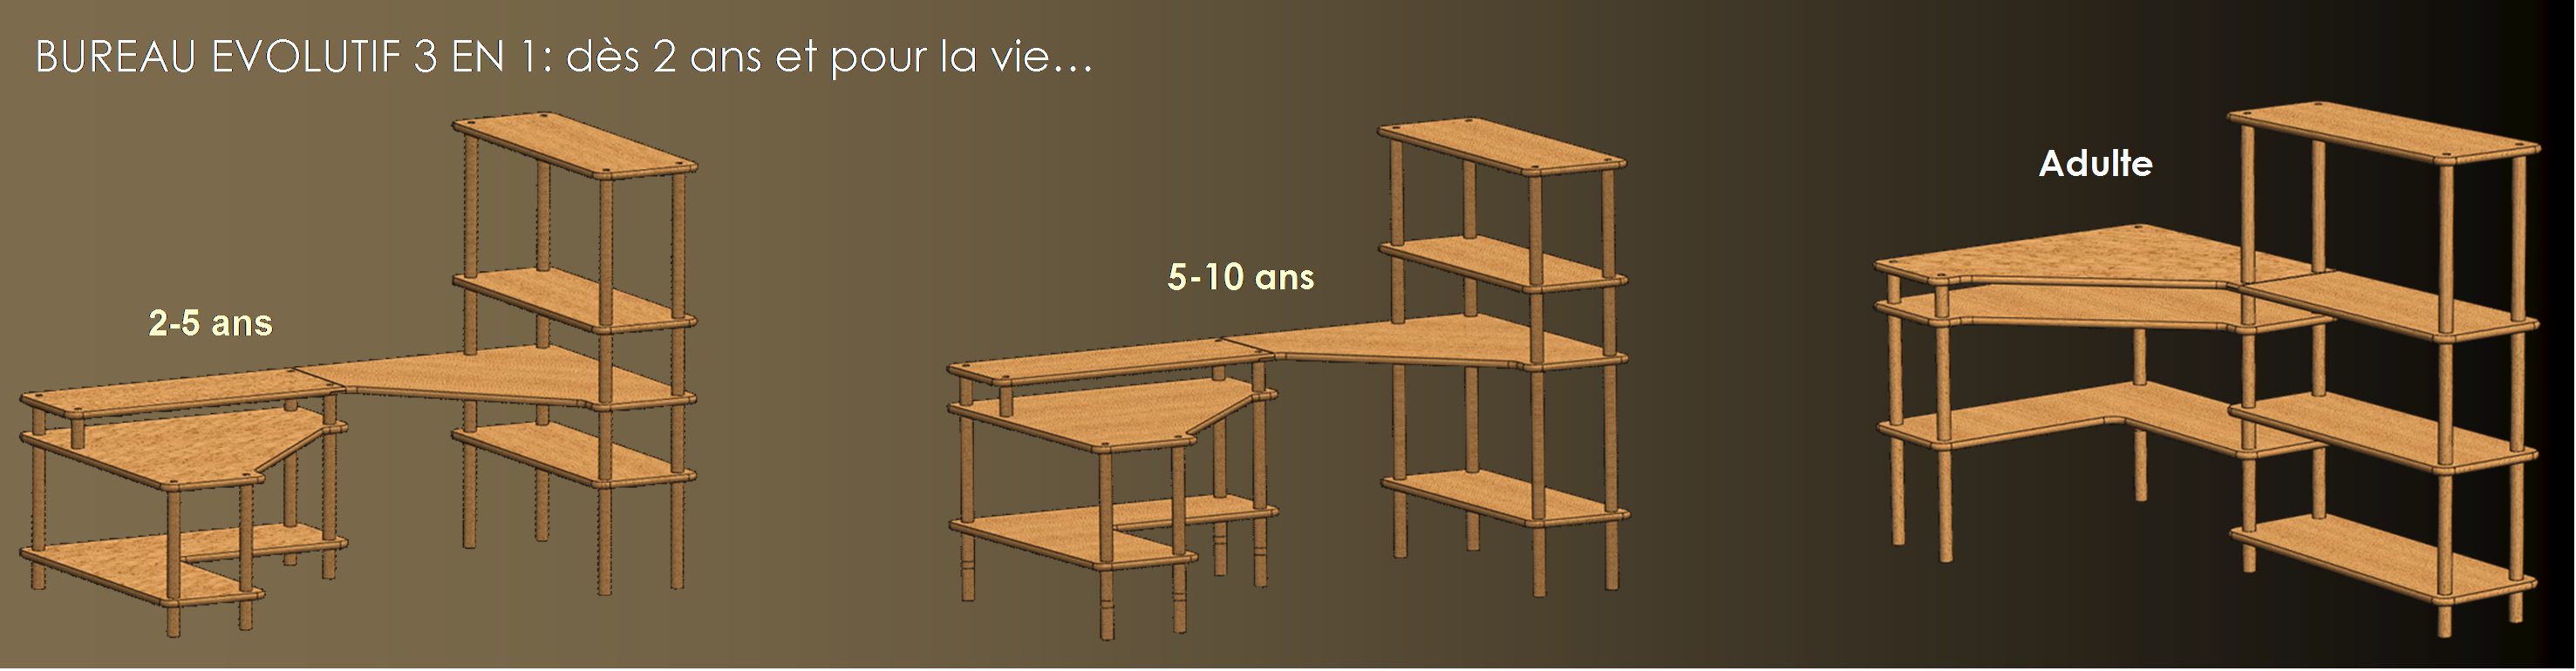 bureau_evolutif_3